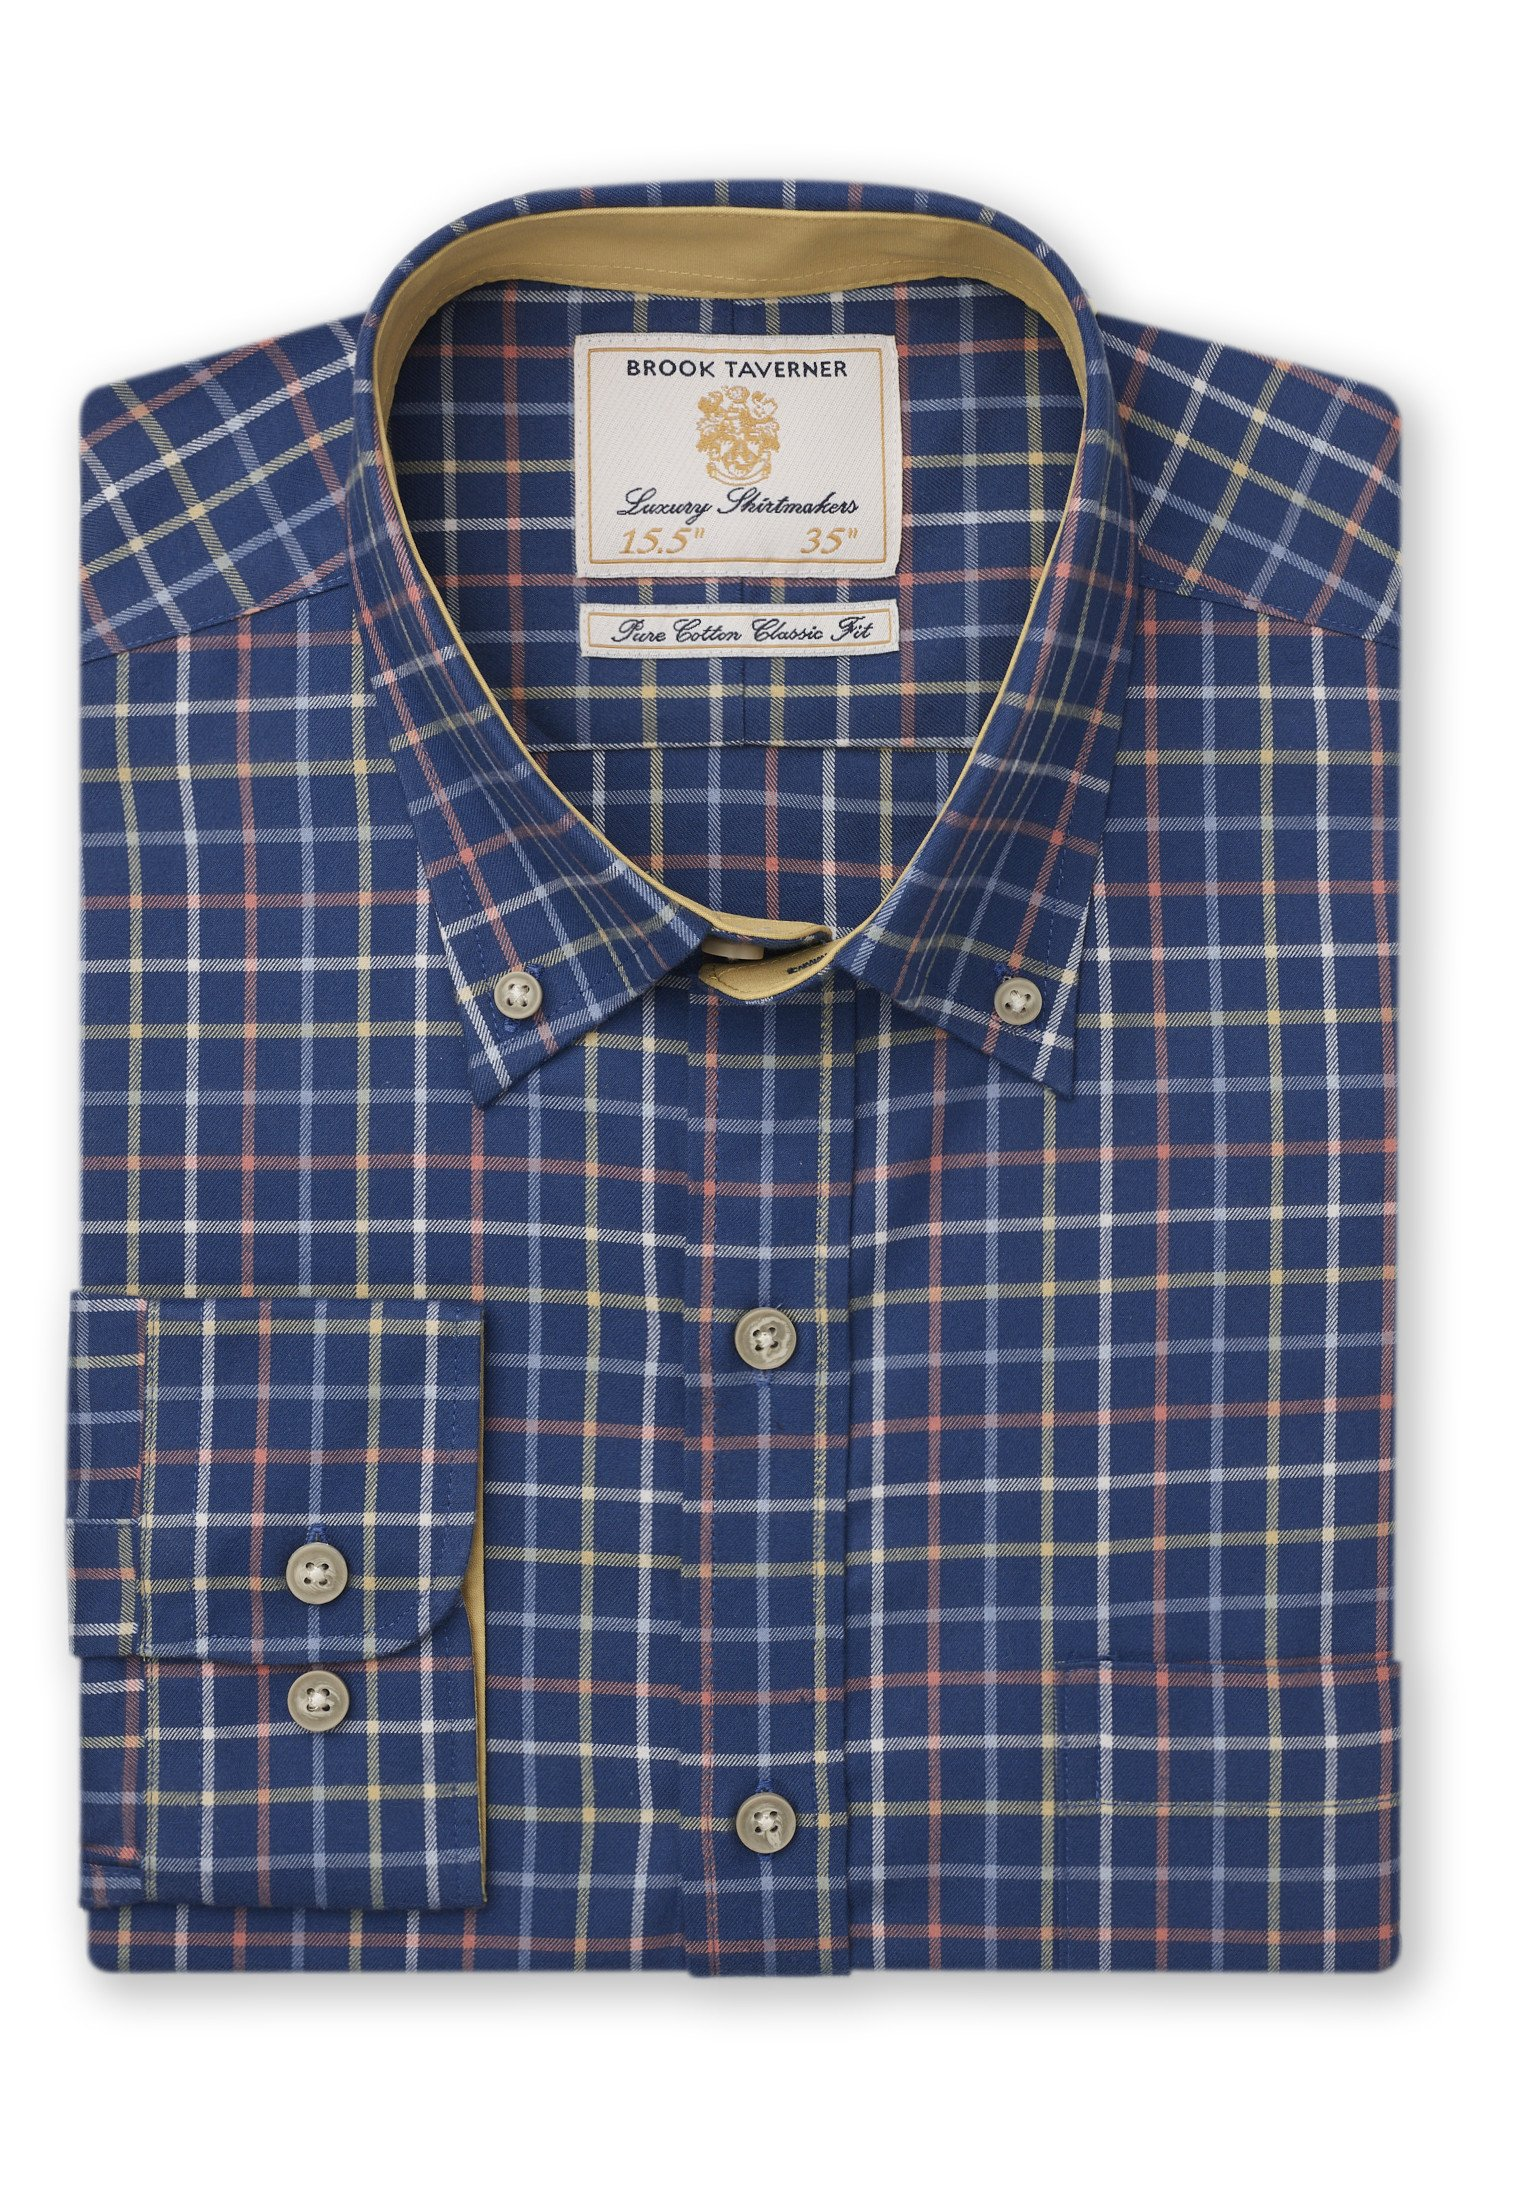 Brook Taverner Tattesall Check shirt in navy.